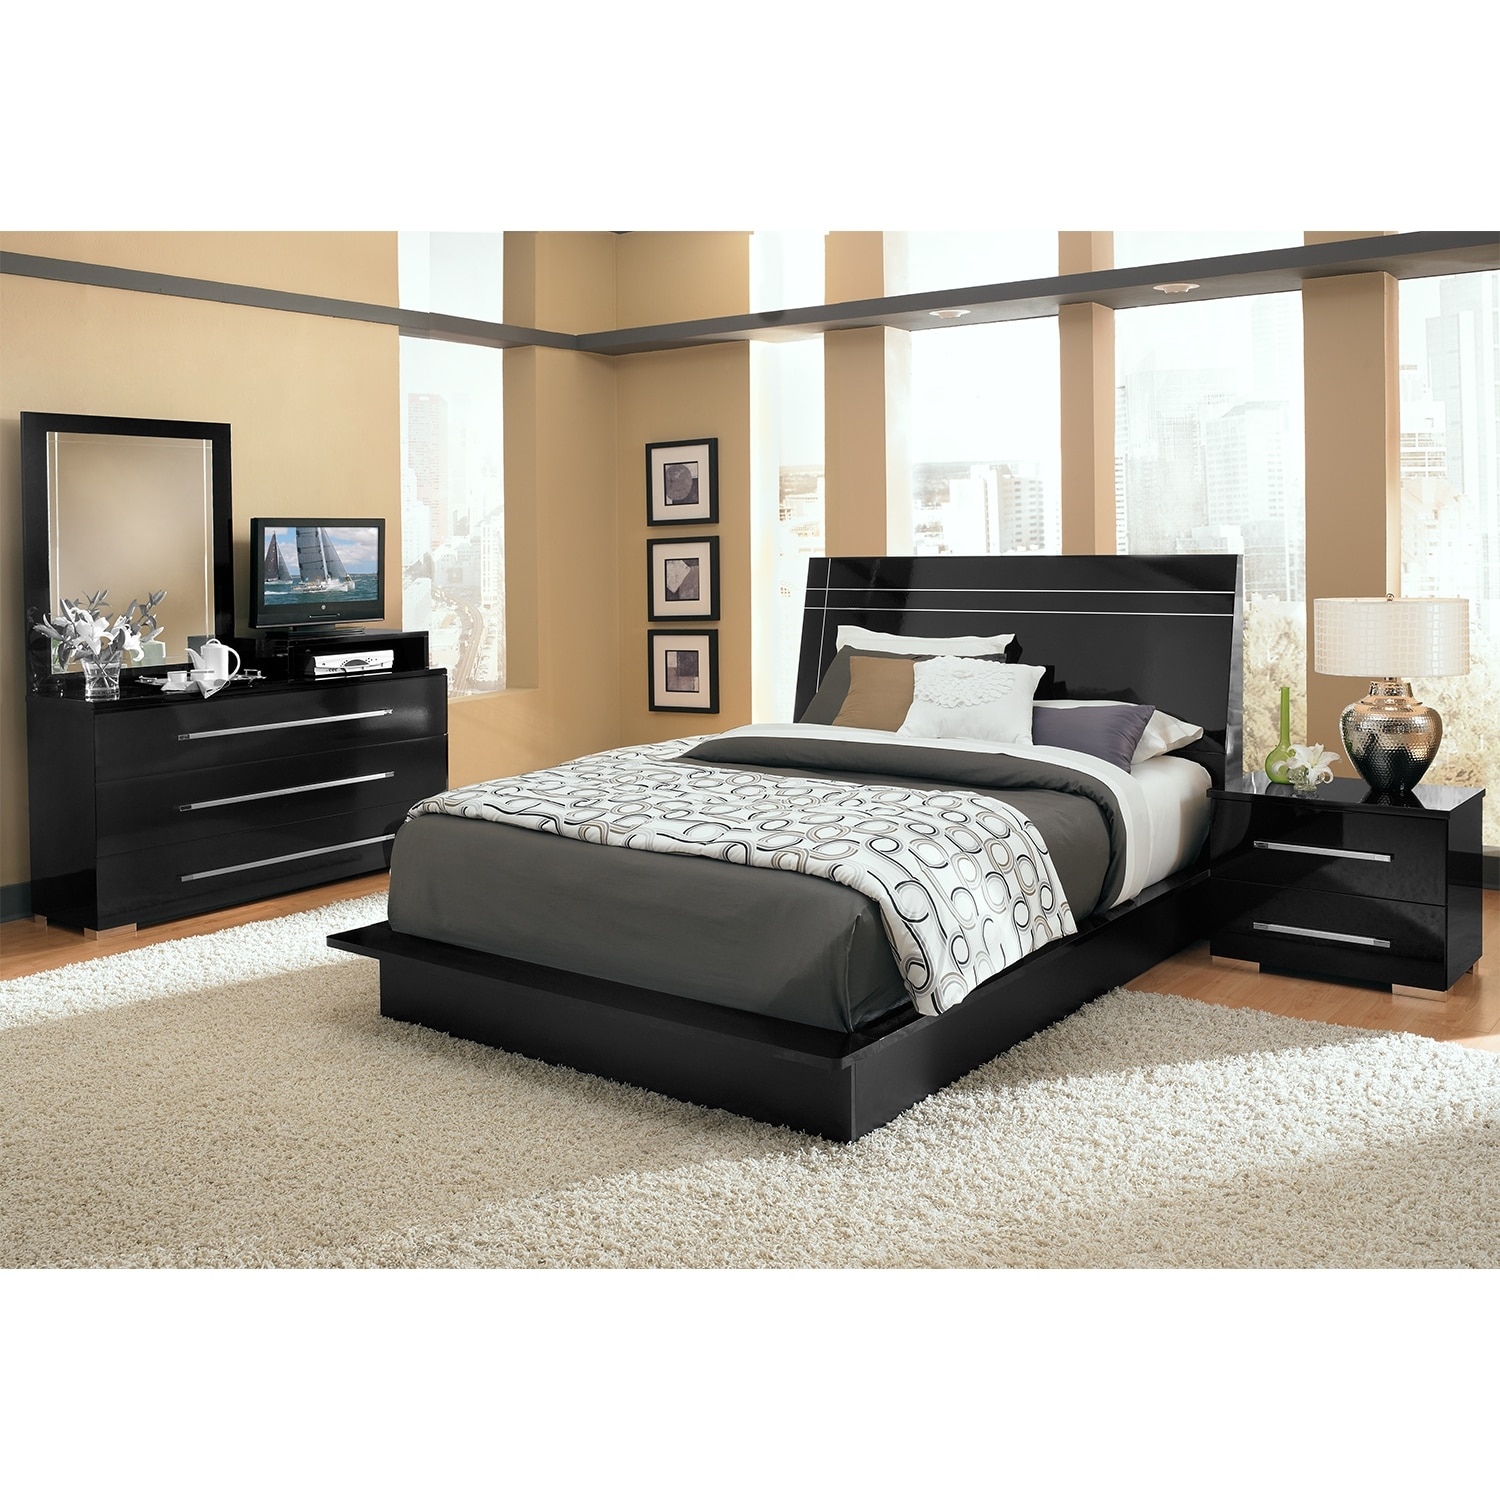 Dimora 6-Piece King Panel Bedroom Set With Media Dresser